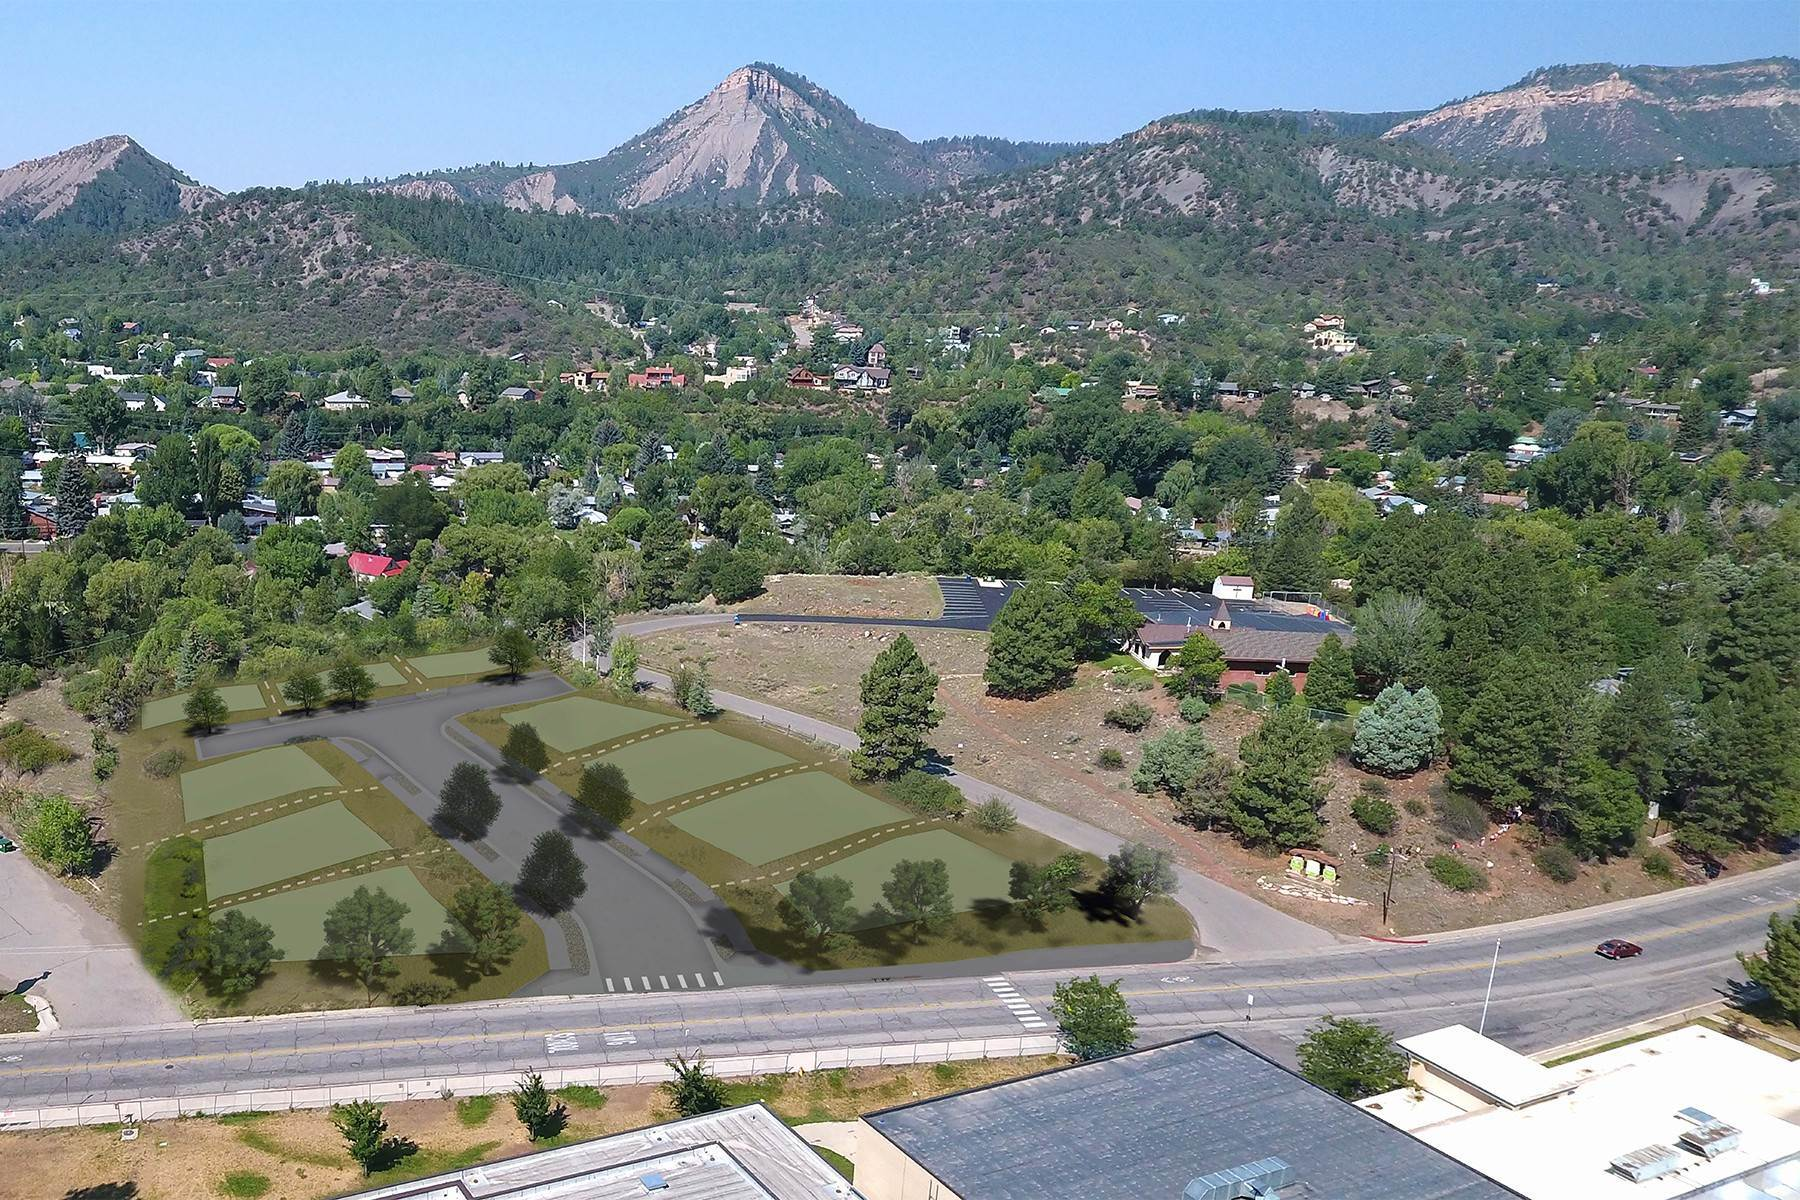 Property for Sale at 9 Calle de Rincon Durango, Colorado 81301 United States